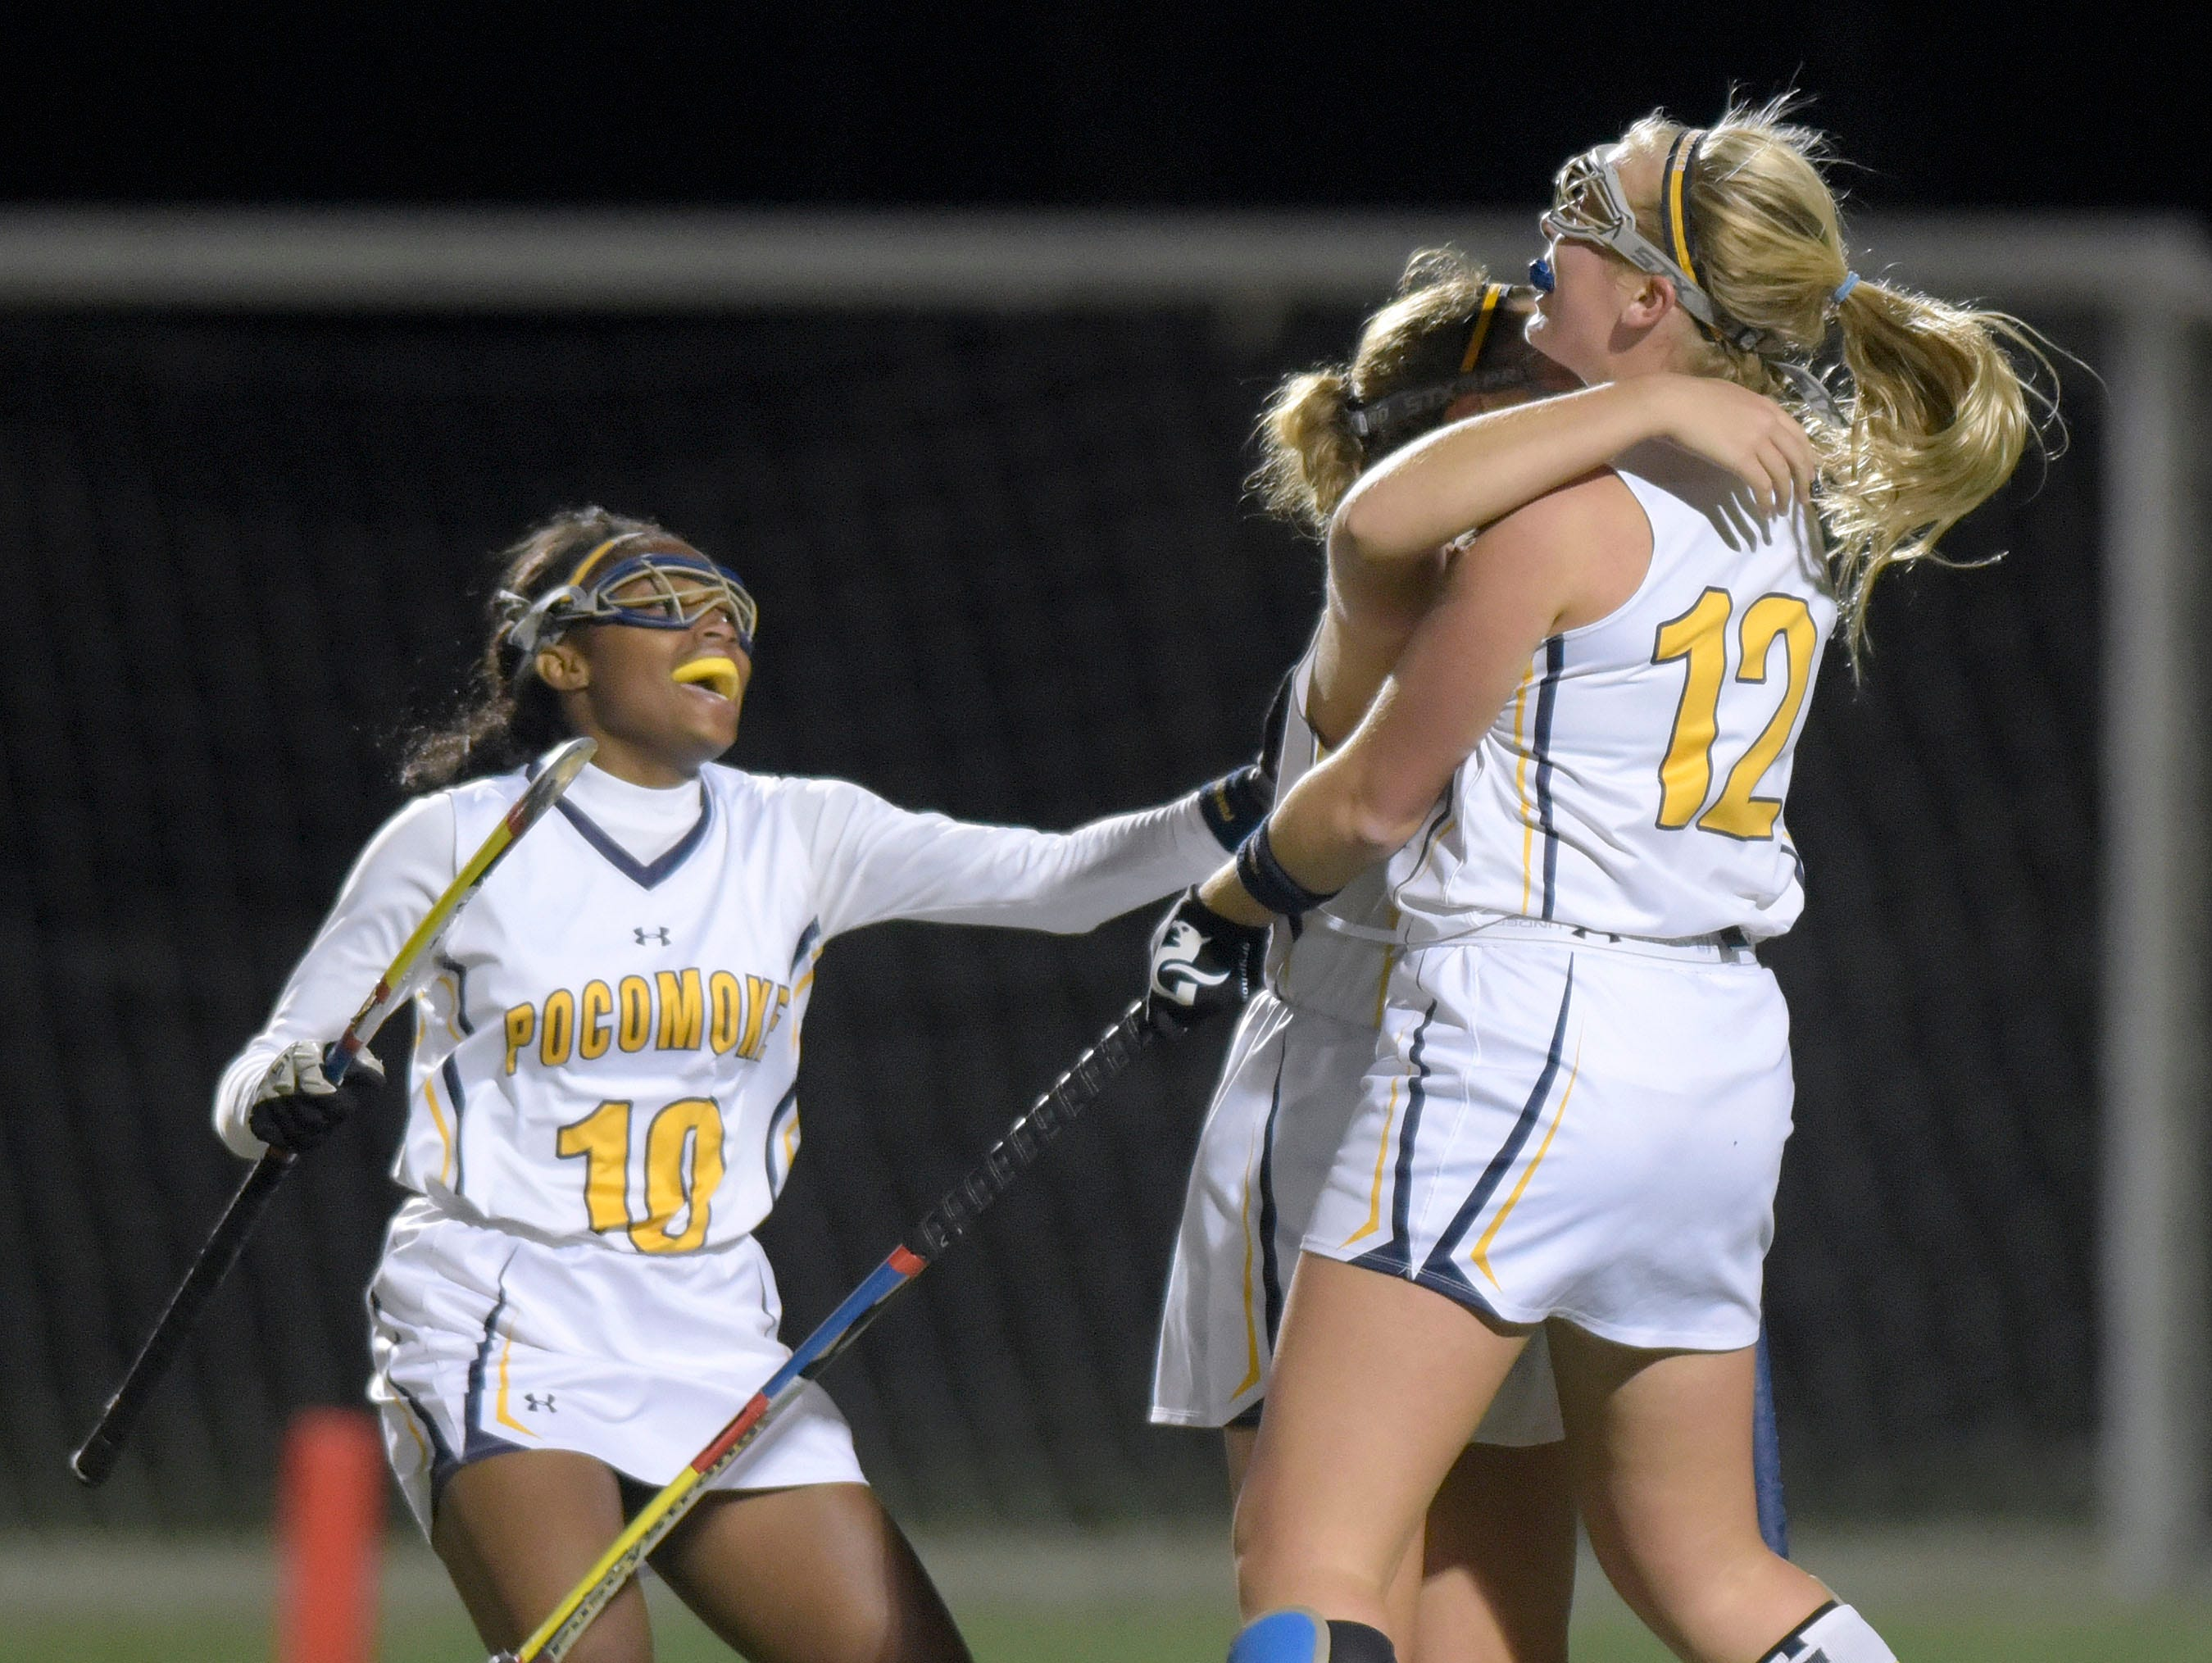 From left, Pocomoke's Shayla Jones, Kasey Lee and Lexi Butler celebrate Lee's goal against Manchester Valley in the second half of a Class 1A state semifinal field hockey game, Wednesday, Nov. 11, 2015 in Burtonsville.